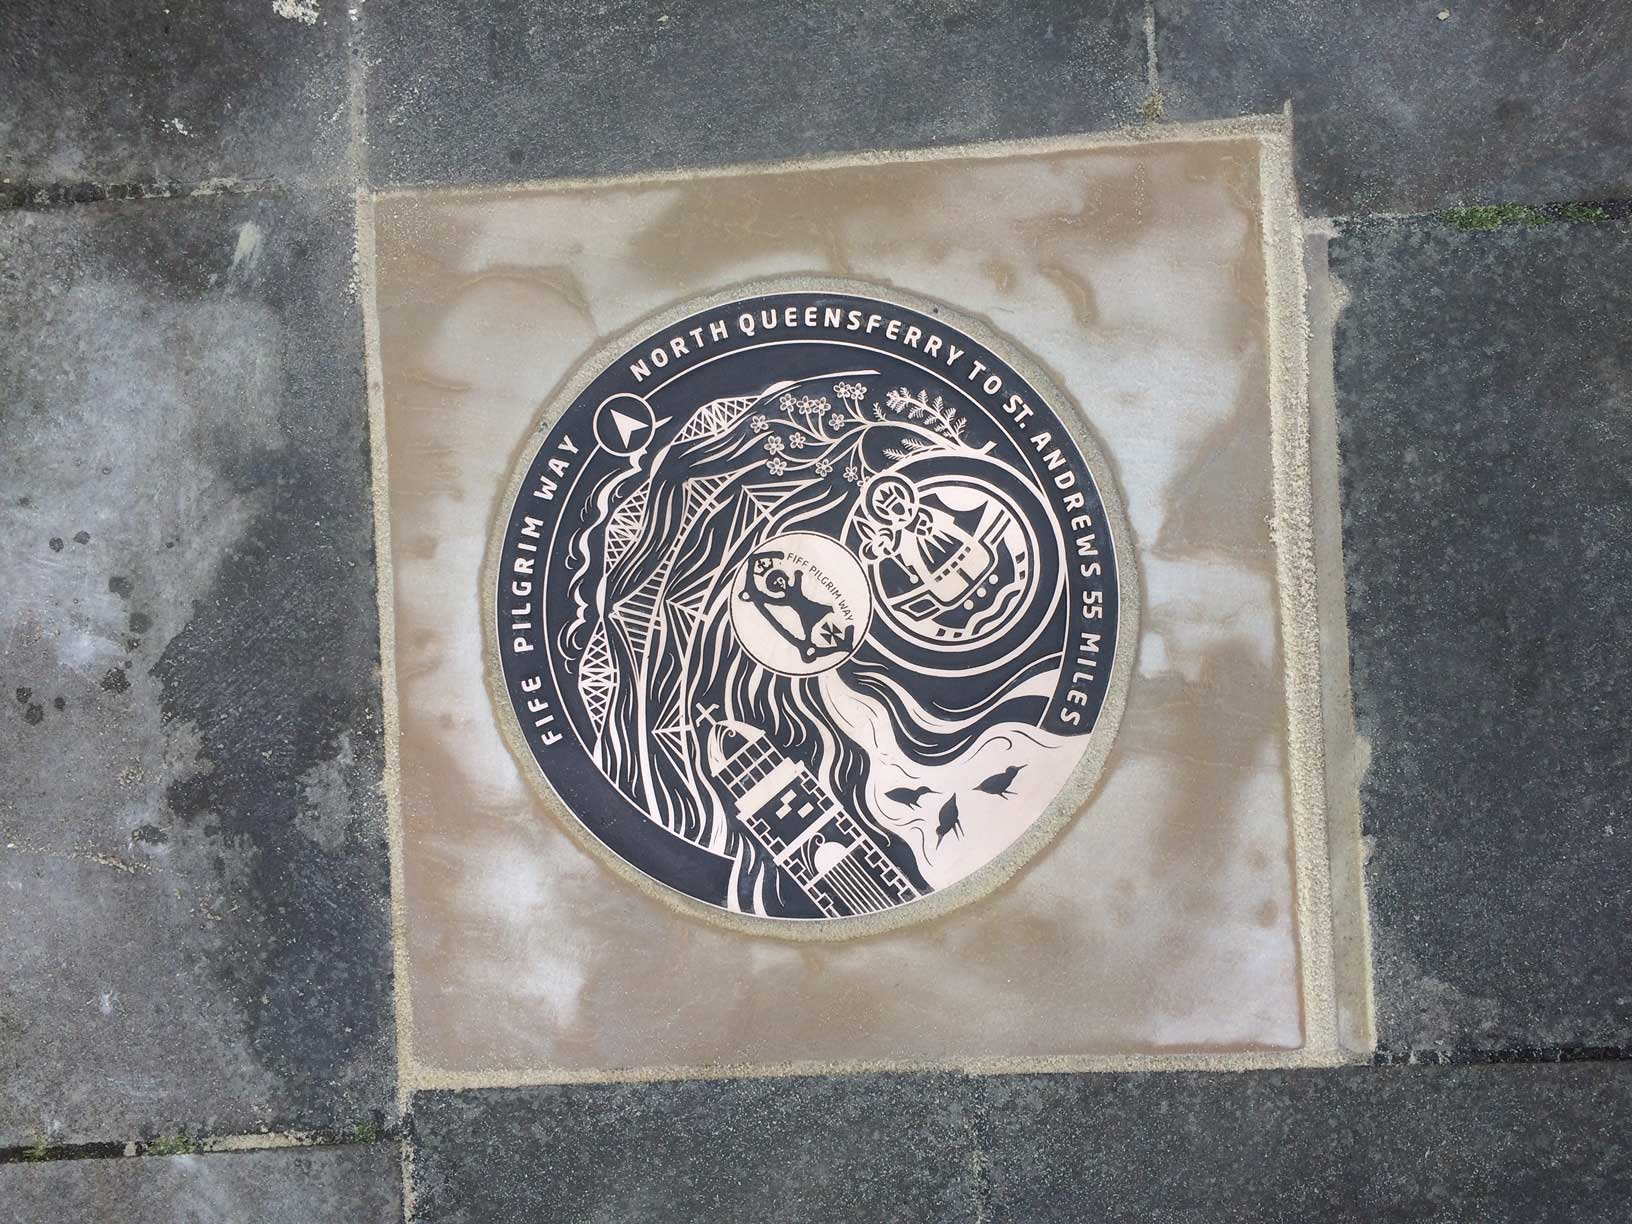 One of the bronze floor discs installed into the pavement